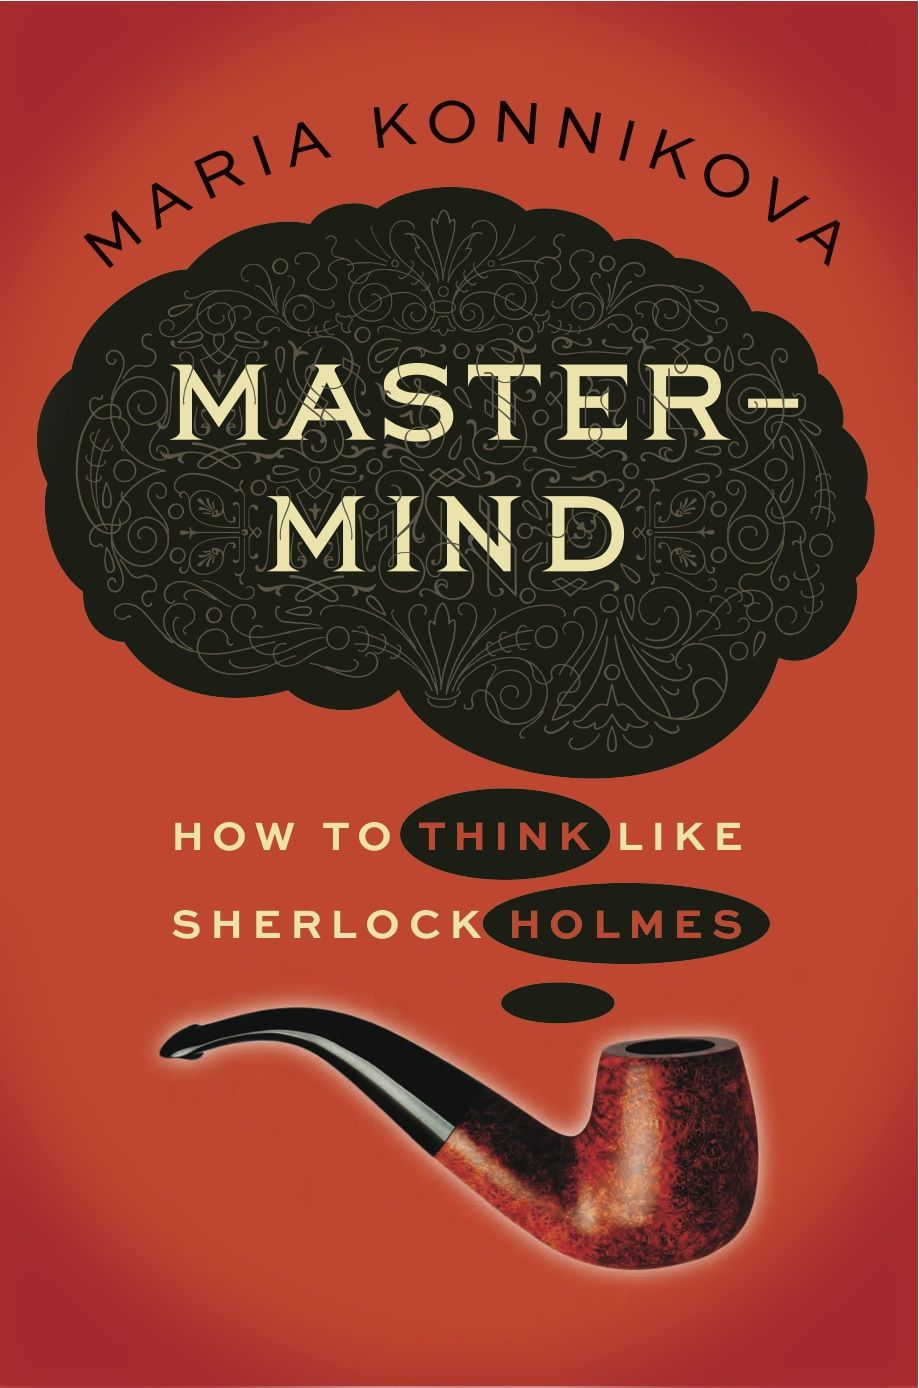 How To Think Like Sherlock Holmes And Have A Better Life Philosophy Books Psychology Books Science Books